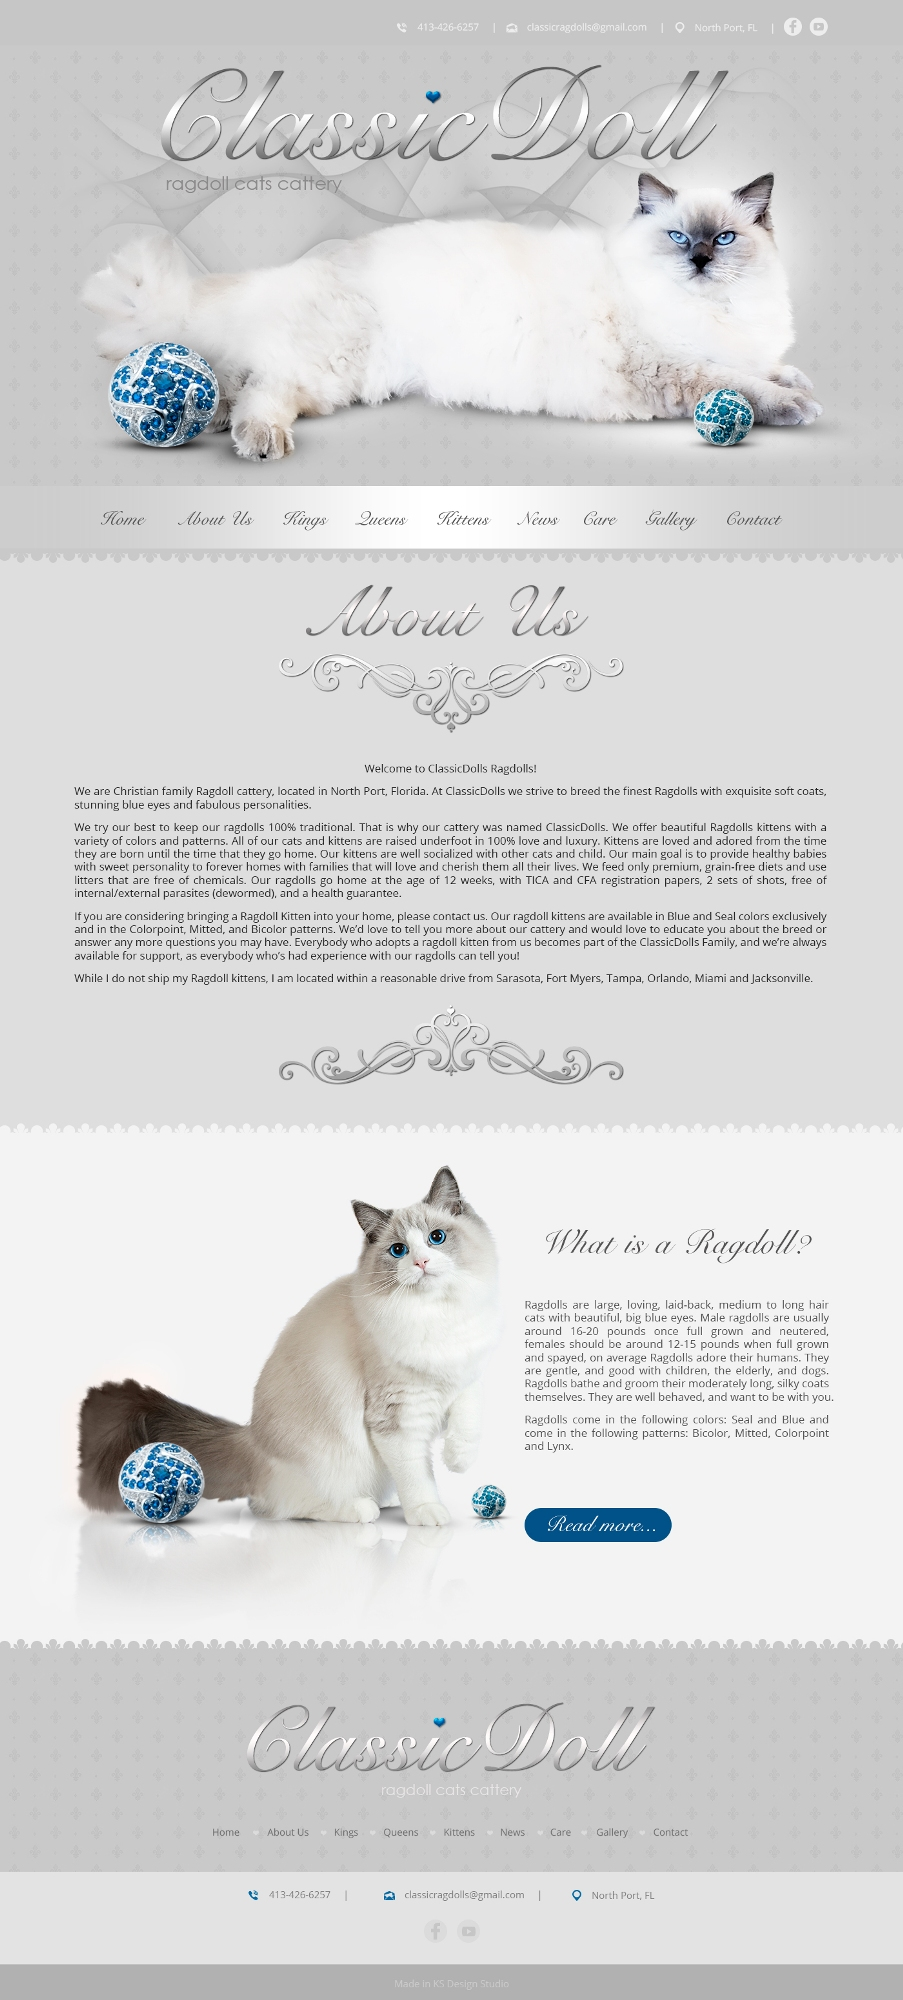 website for breeders, website for cats, website for catteries, design of website